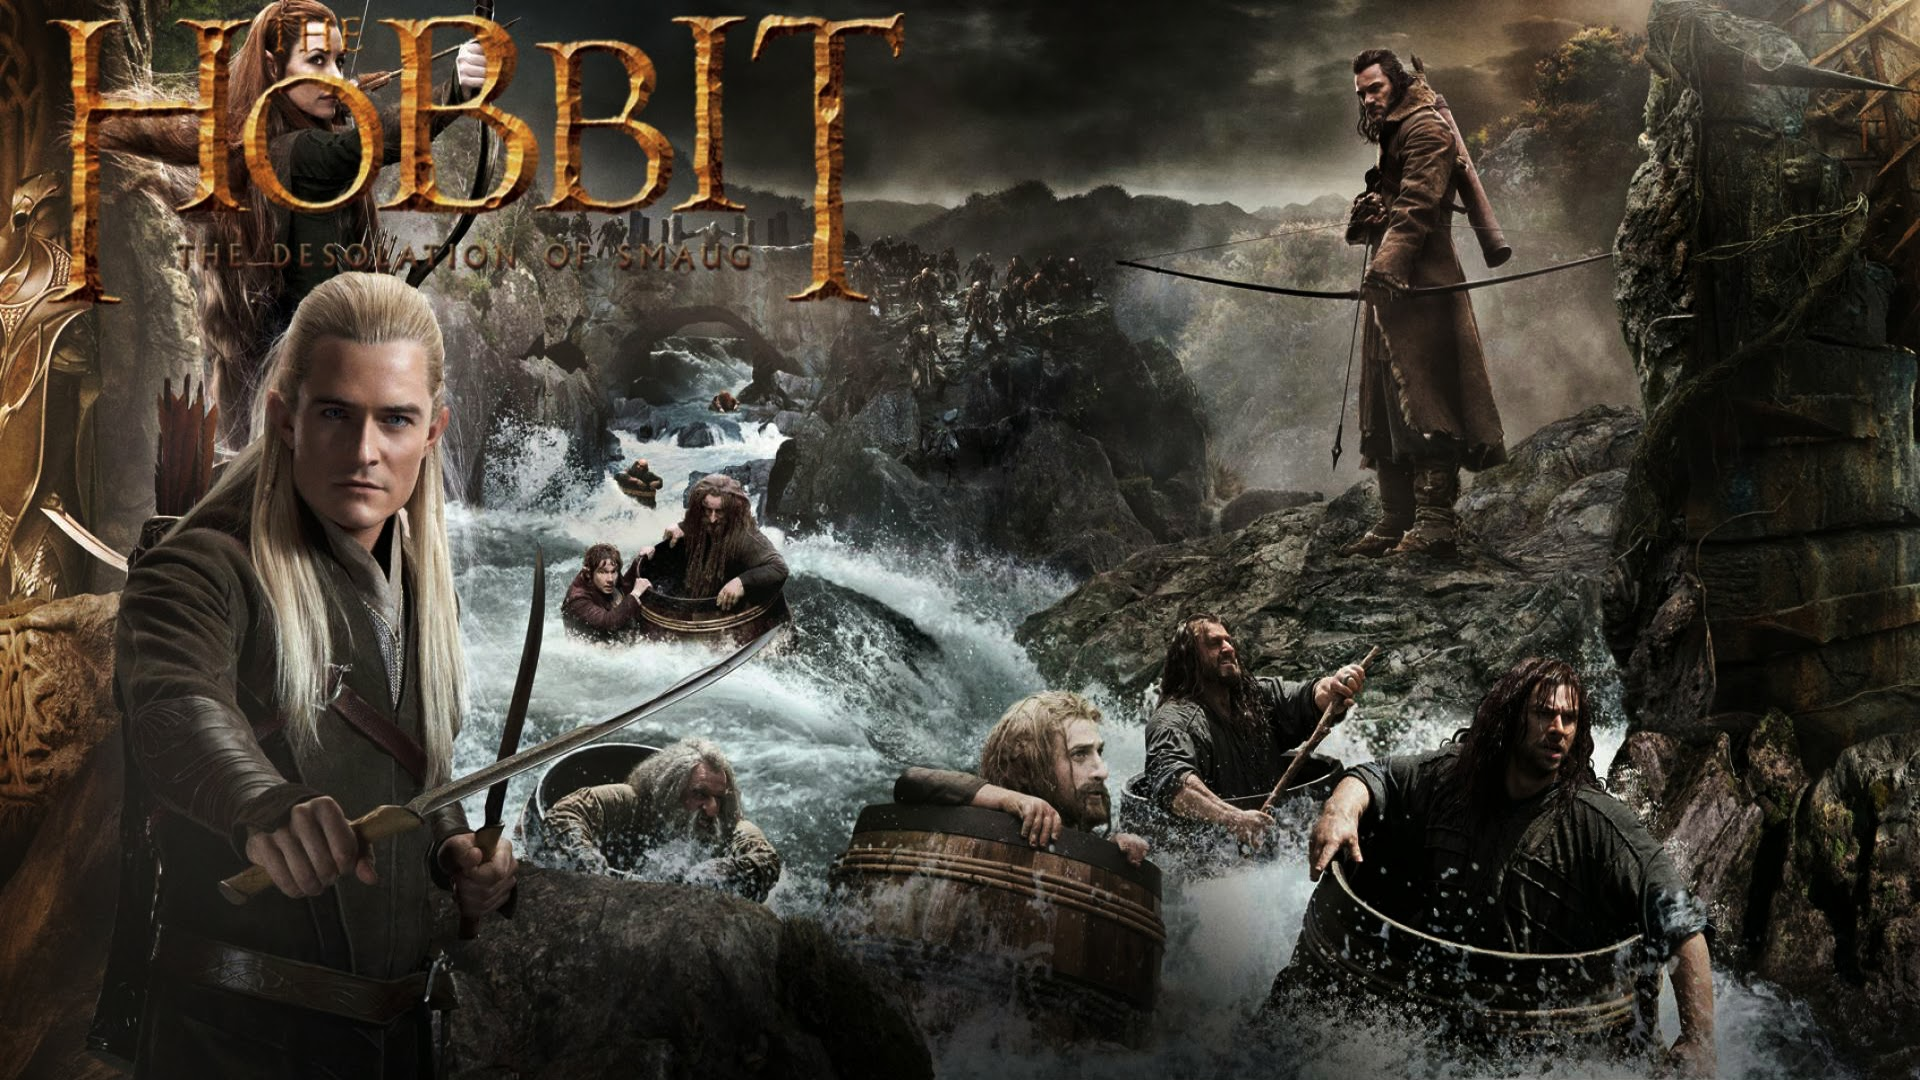 The Hobbit 2013 Wallpaper   Wallpaper High Definition High Quality 1920x1080